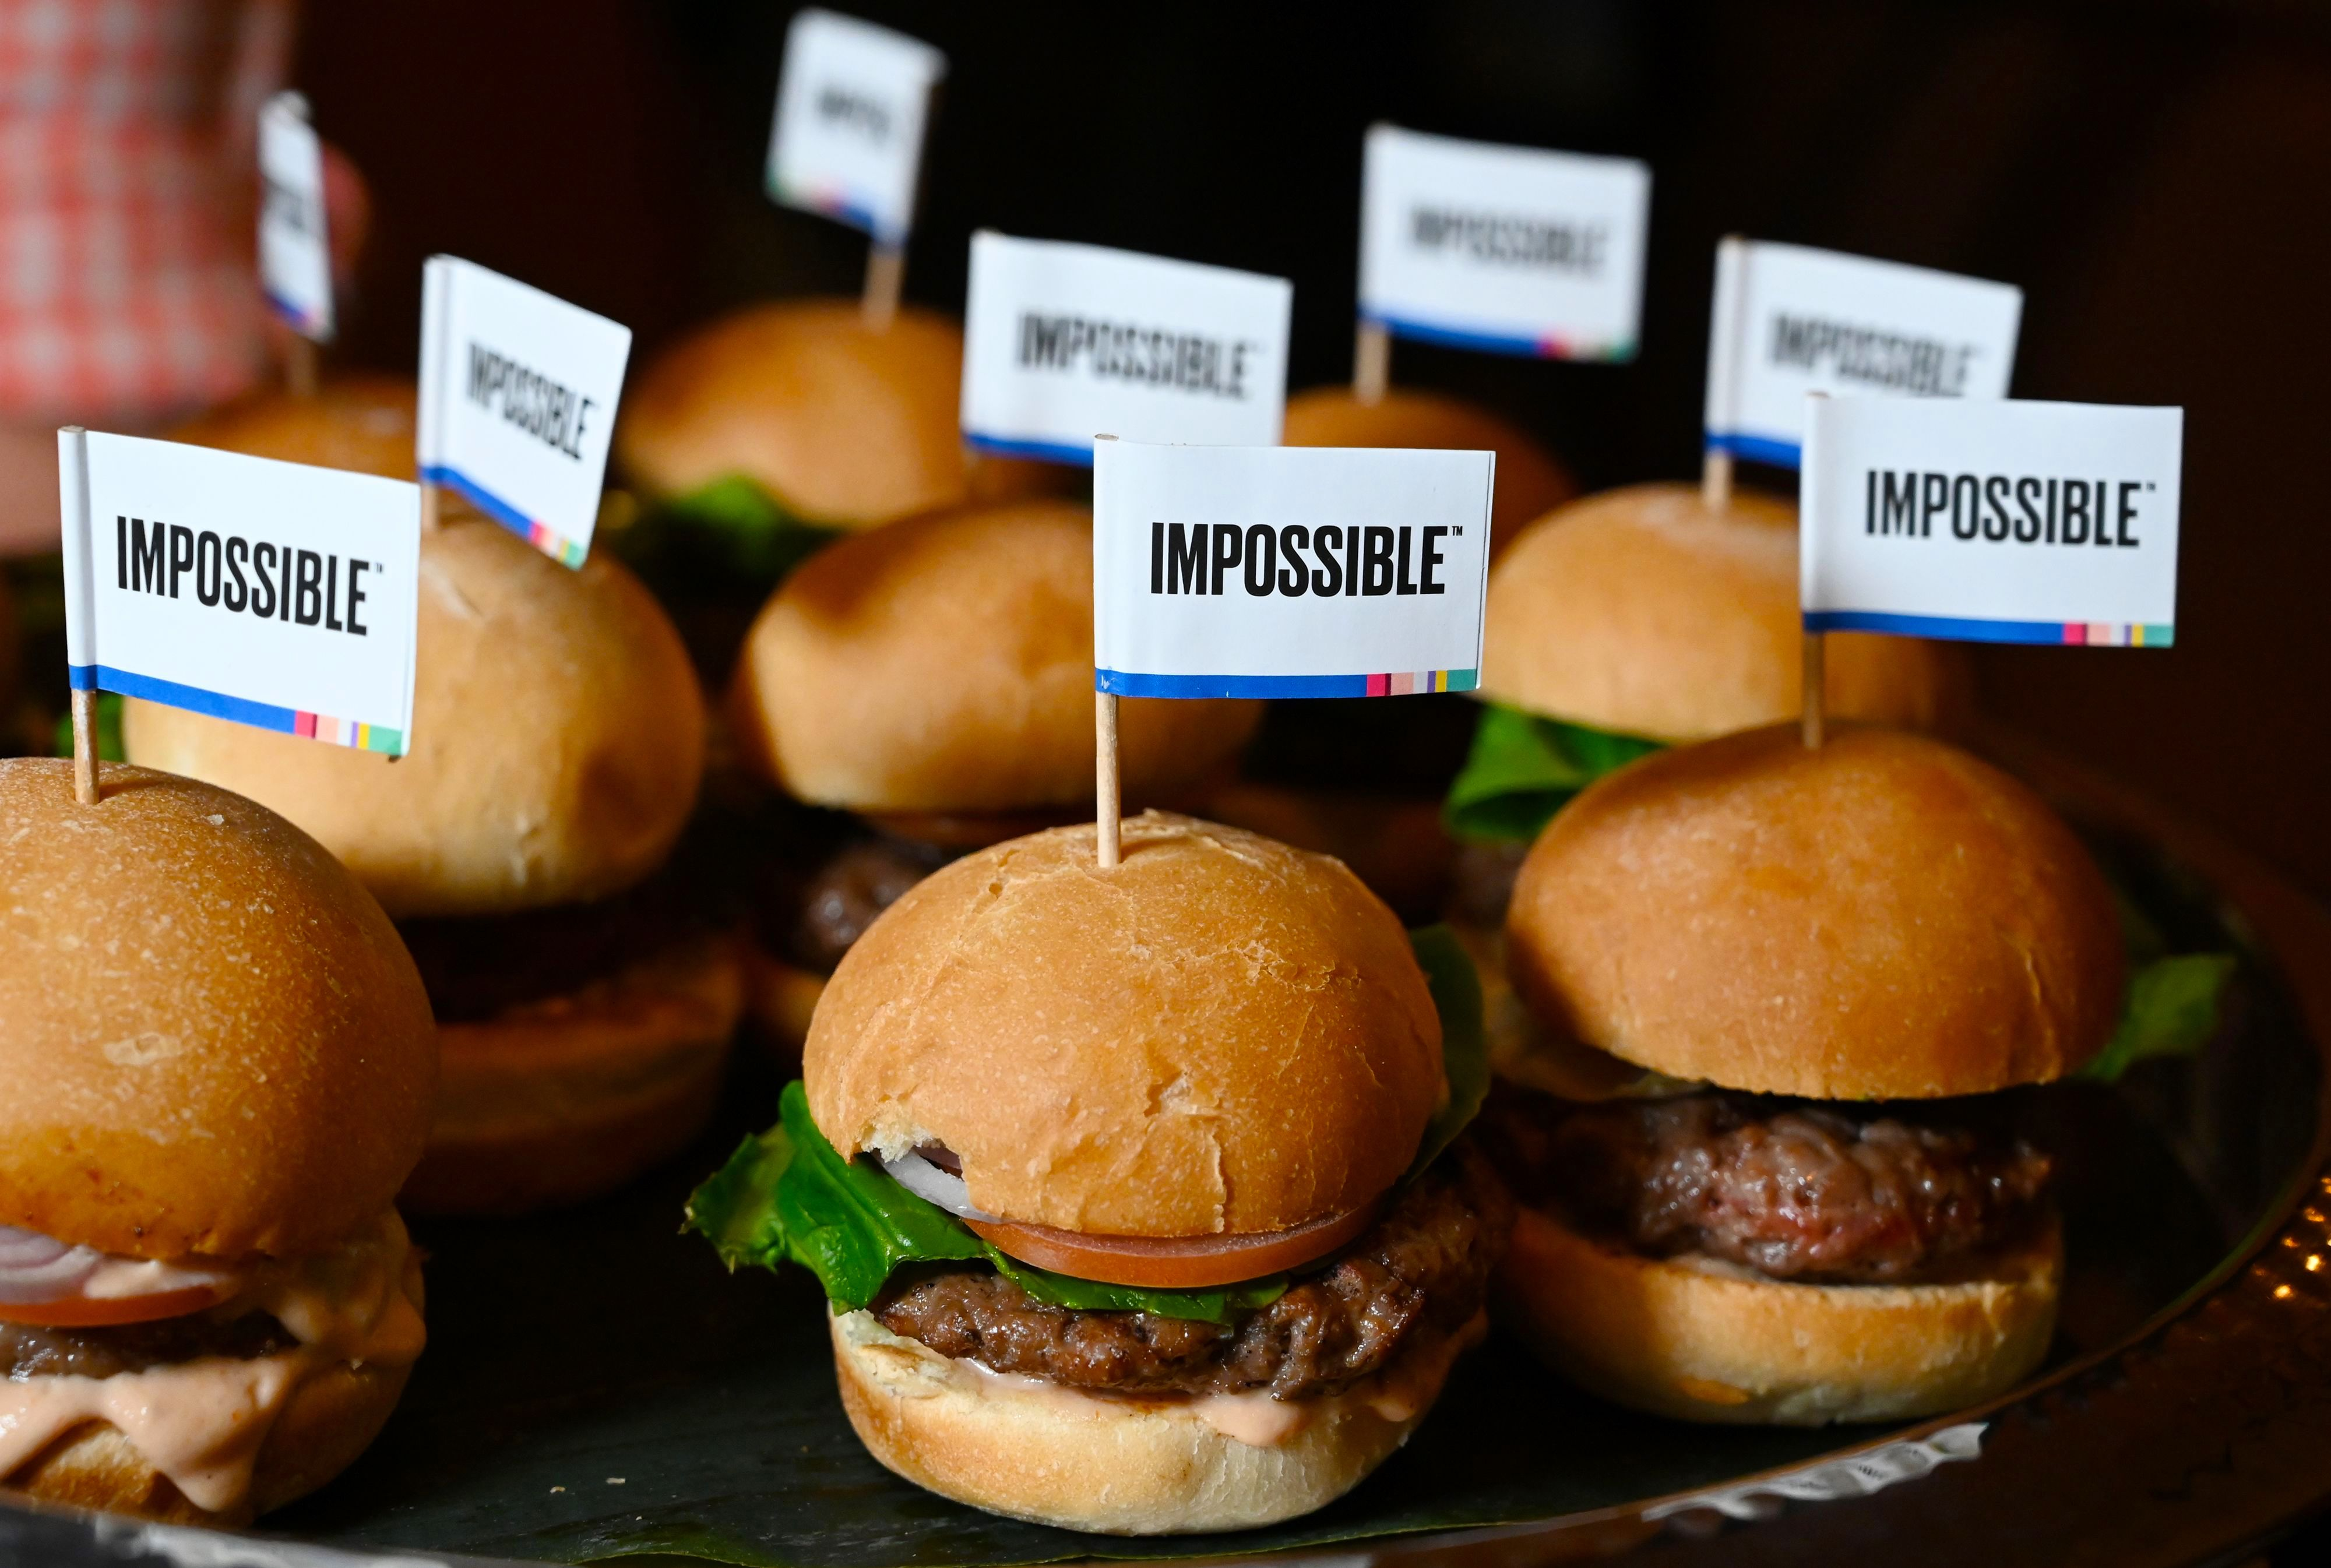 You can finally buy Impossible Foods' meatless burger in grocery stores, starting Friday